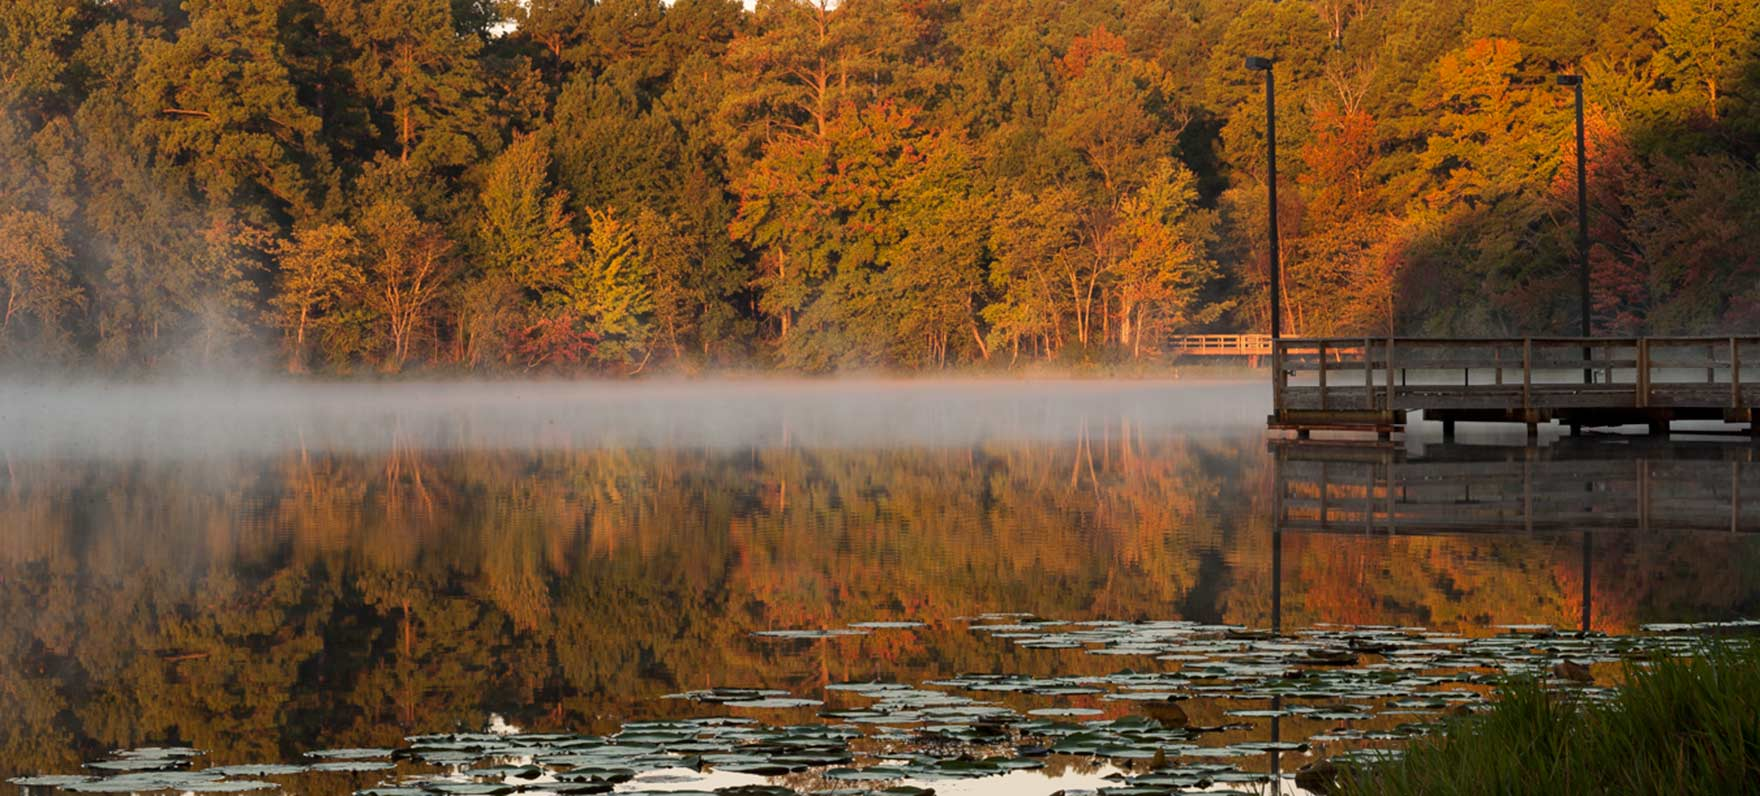 View of lake and fishing pier with colorful fall foliage